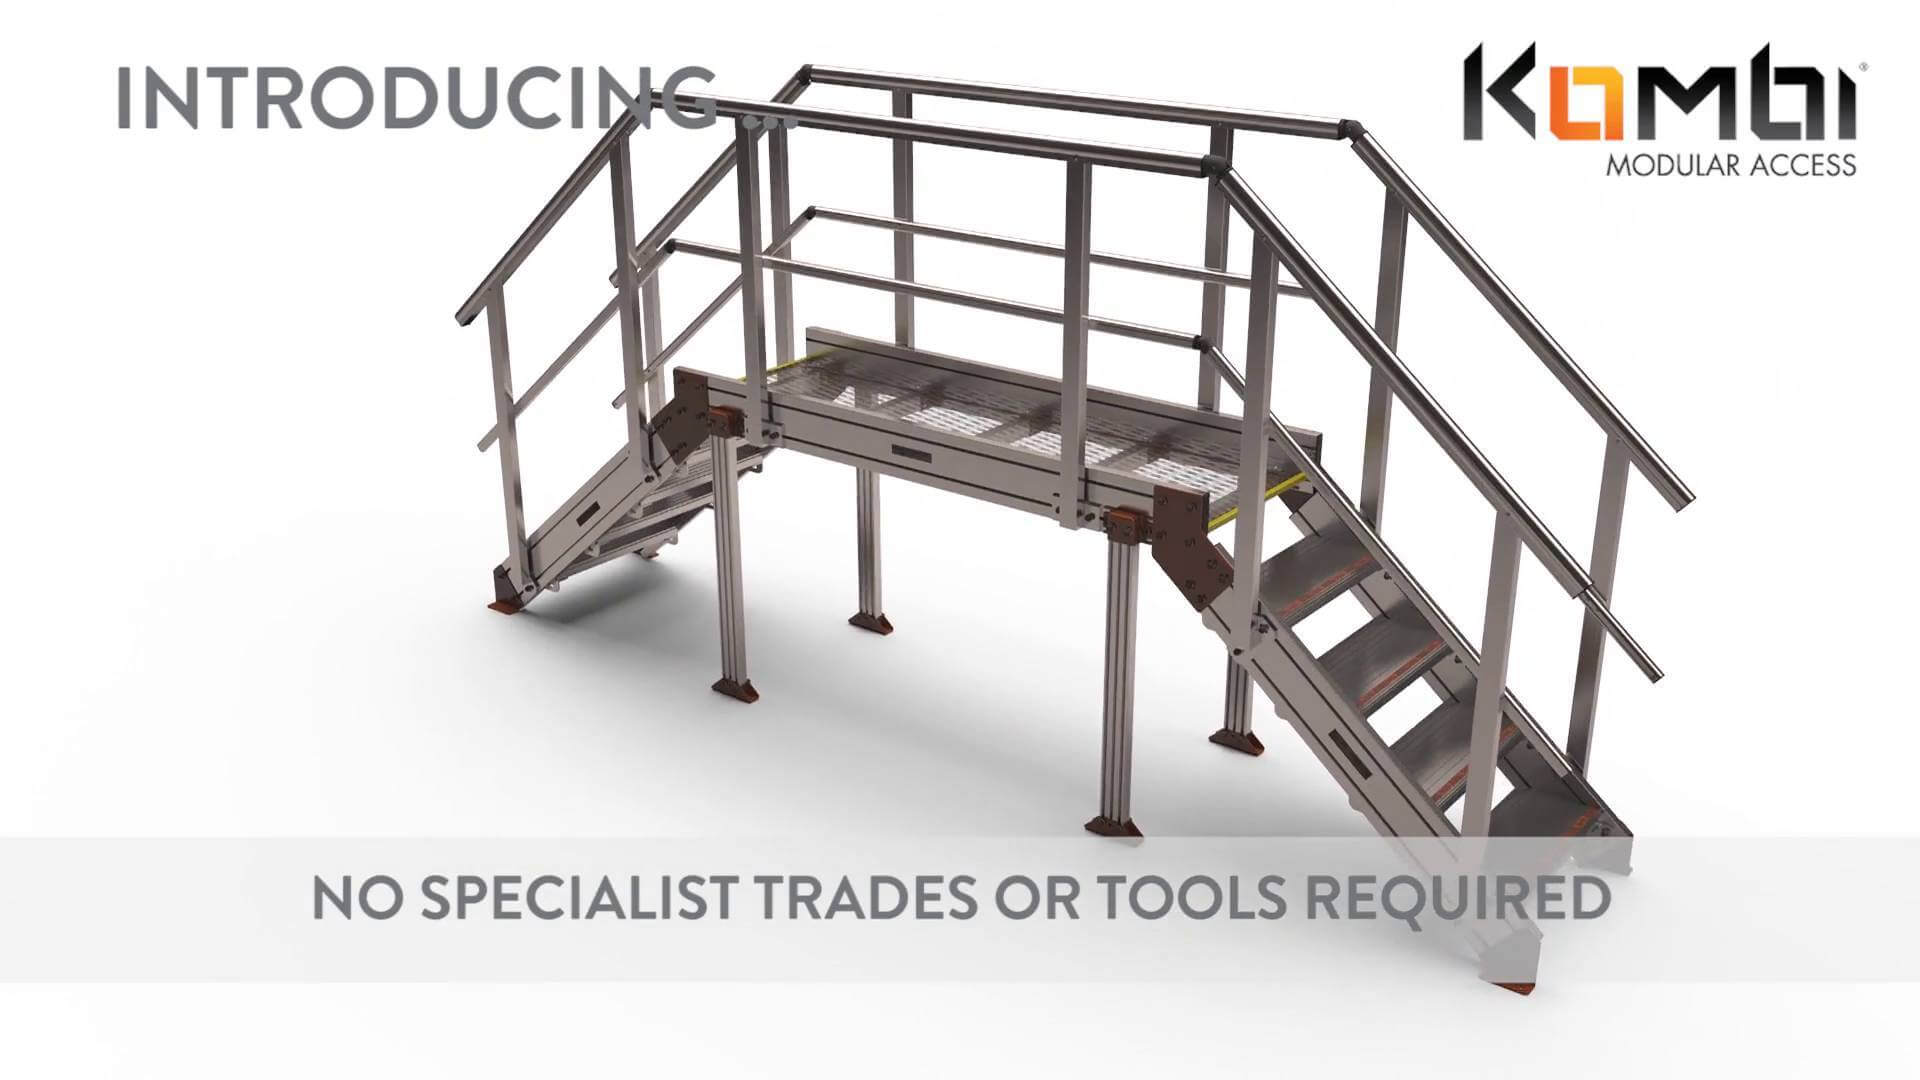 Overview video of Kombi stair and platform system in operation